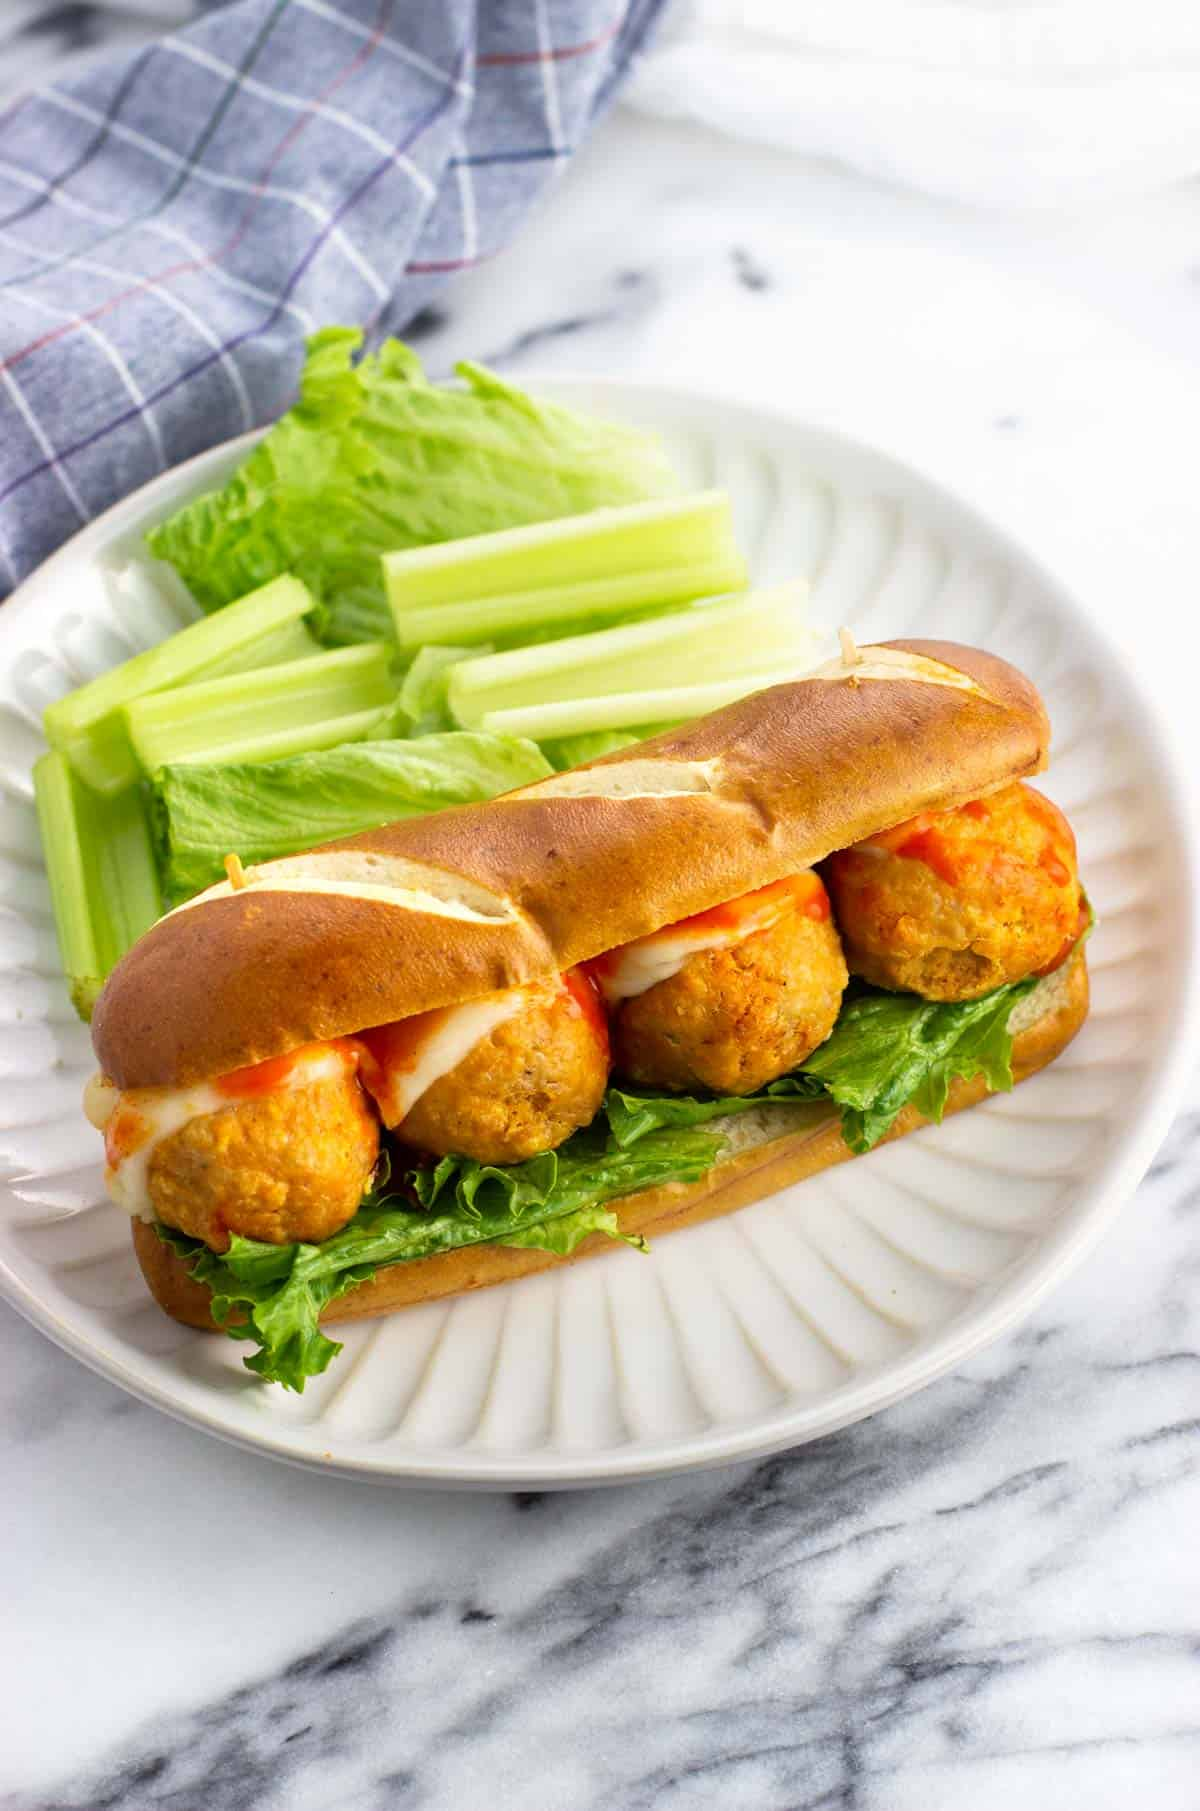 Four meatballs on a sub roll with lettuce and cheese.